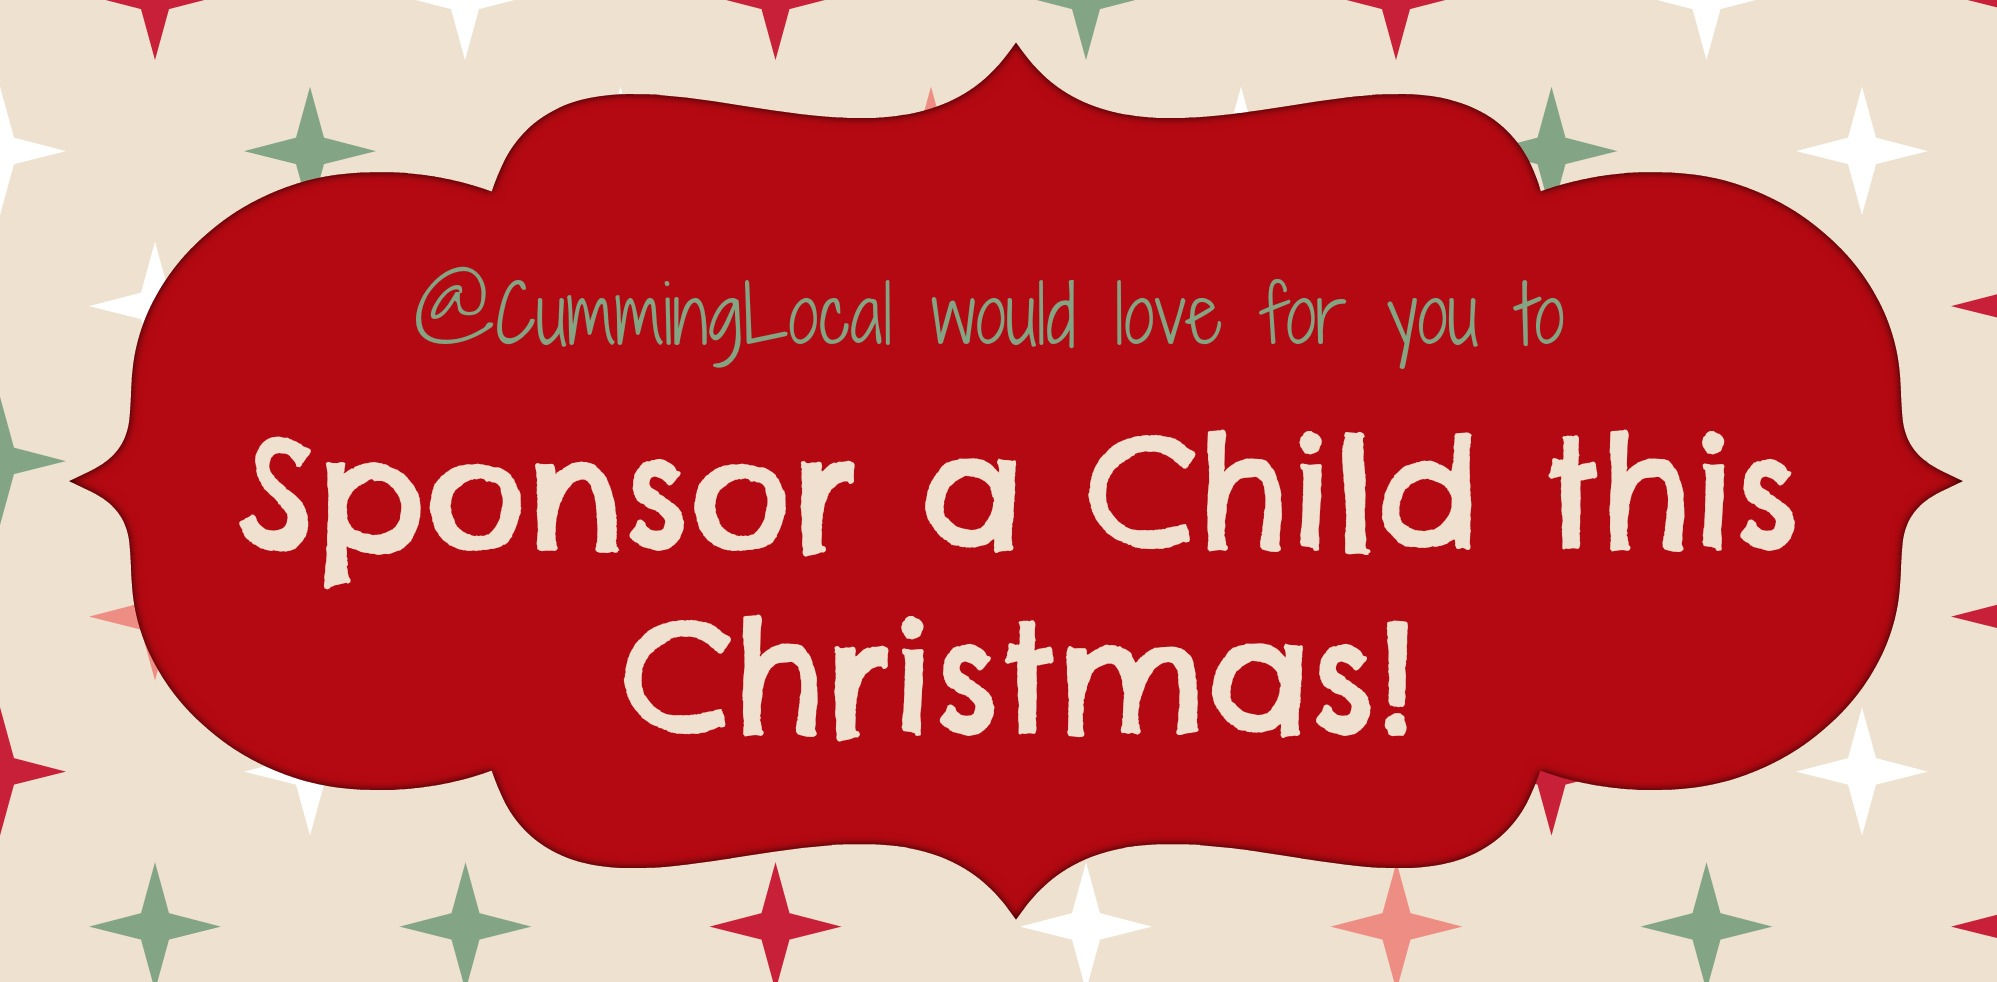 Sponsor a Child this Christmas 2013